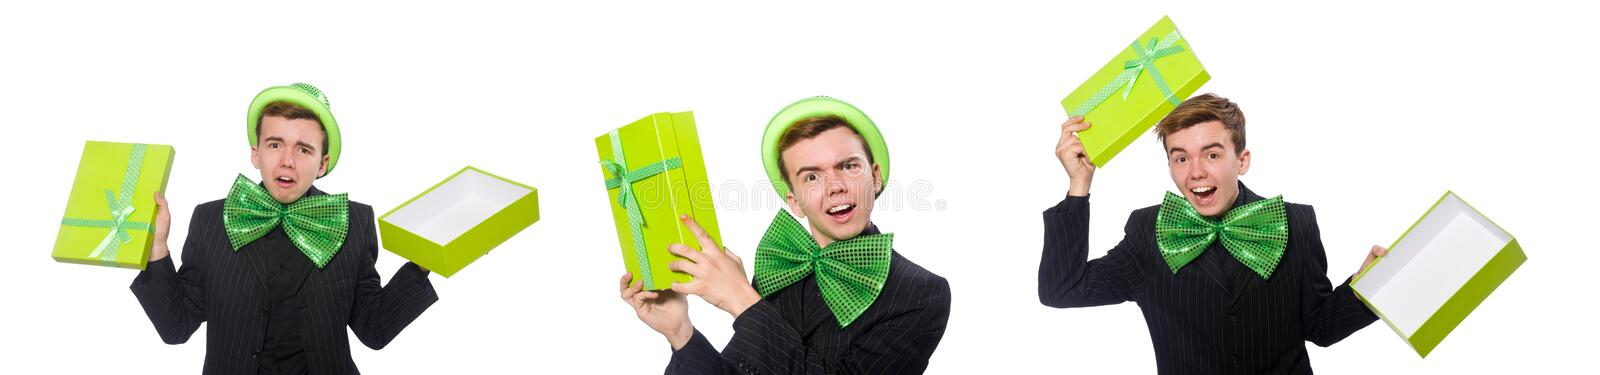 The funny man in saint patrick holiday concept. Funny man in saint patrick holiday concept stock photo